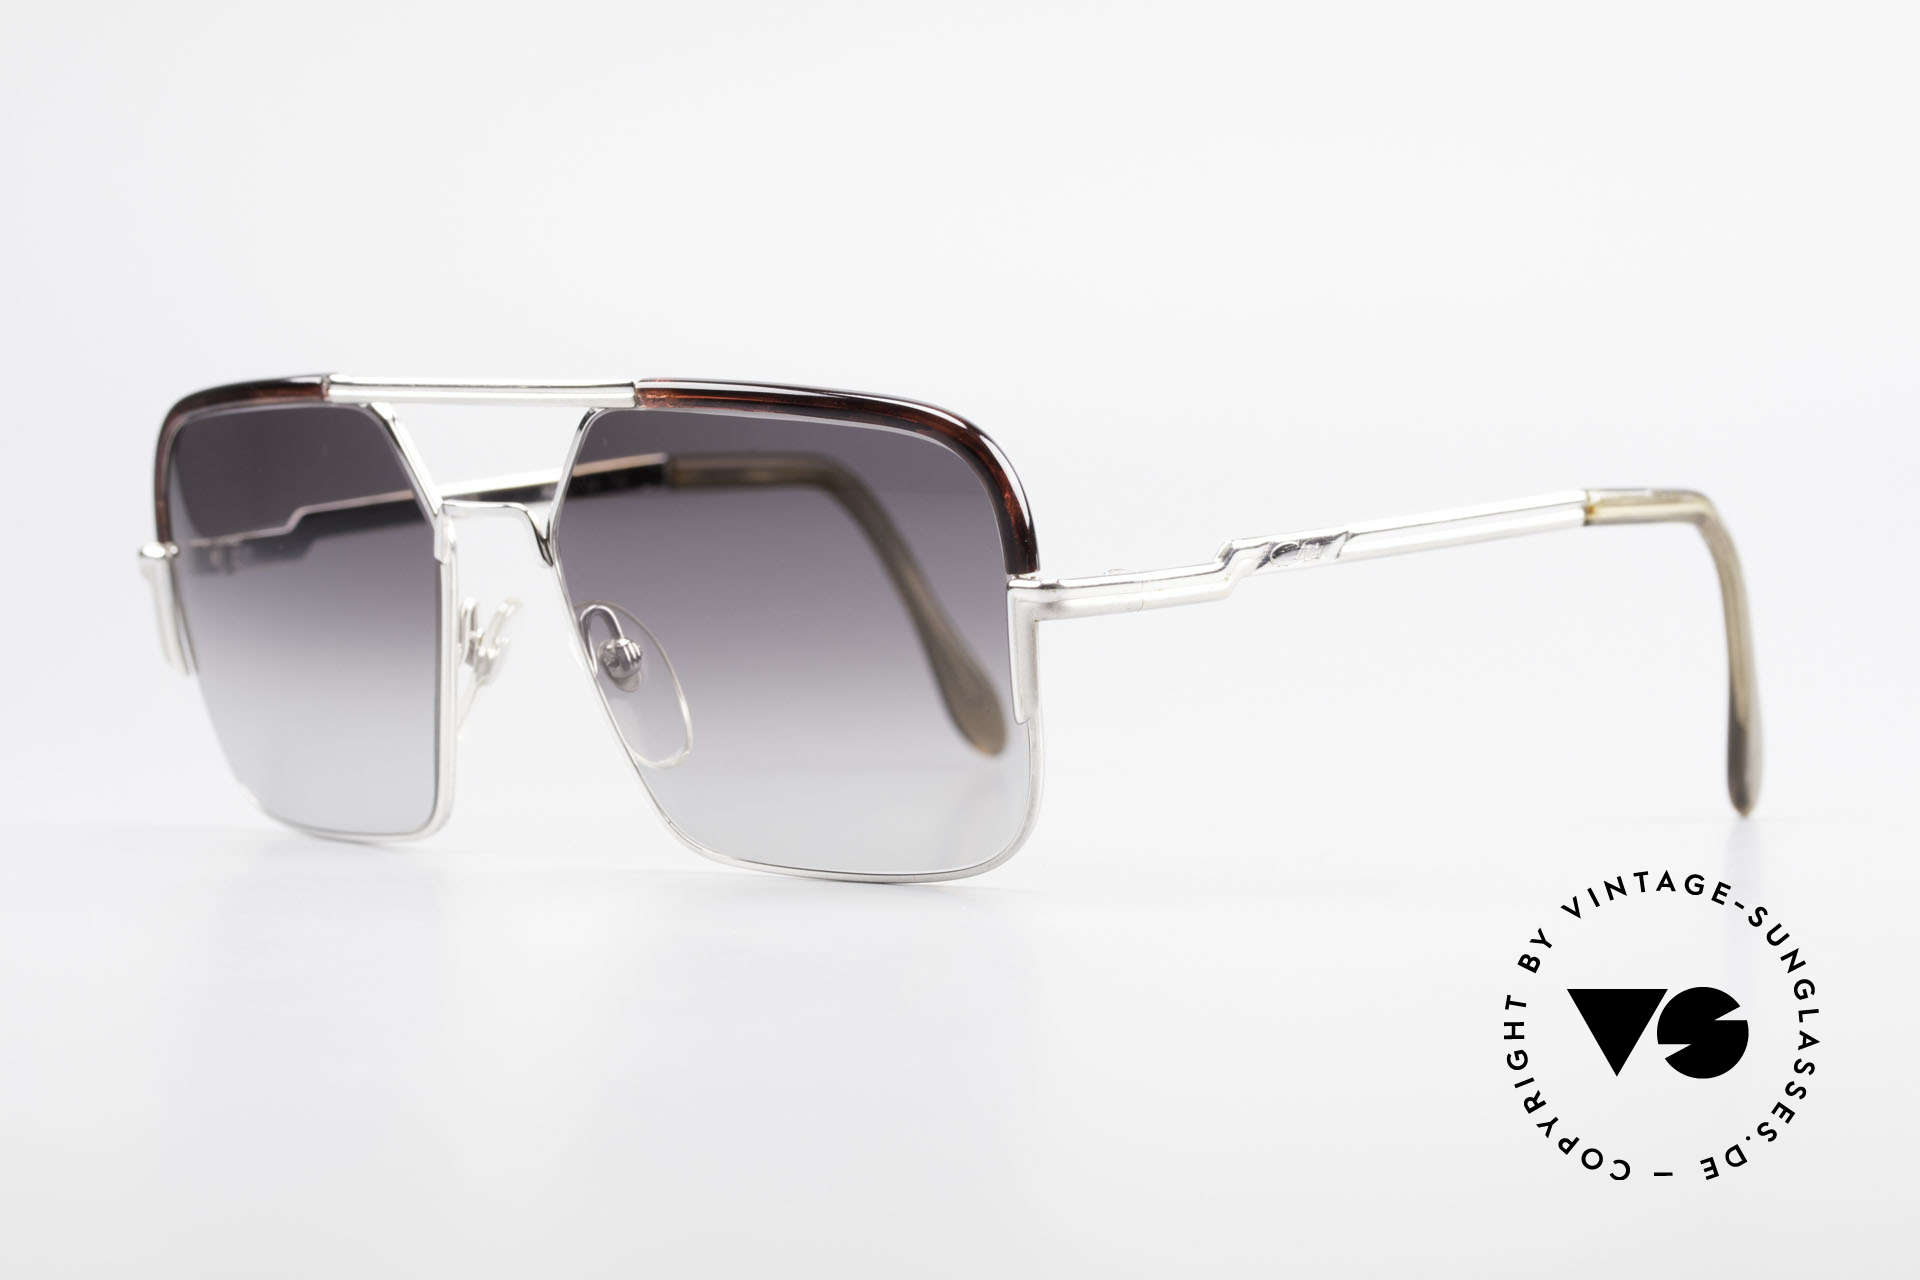 Cazal 706 70's Combi Shades First Series, with the age-old 'Frame Germany' engraving; size 56/16, Made for Men